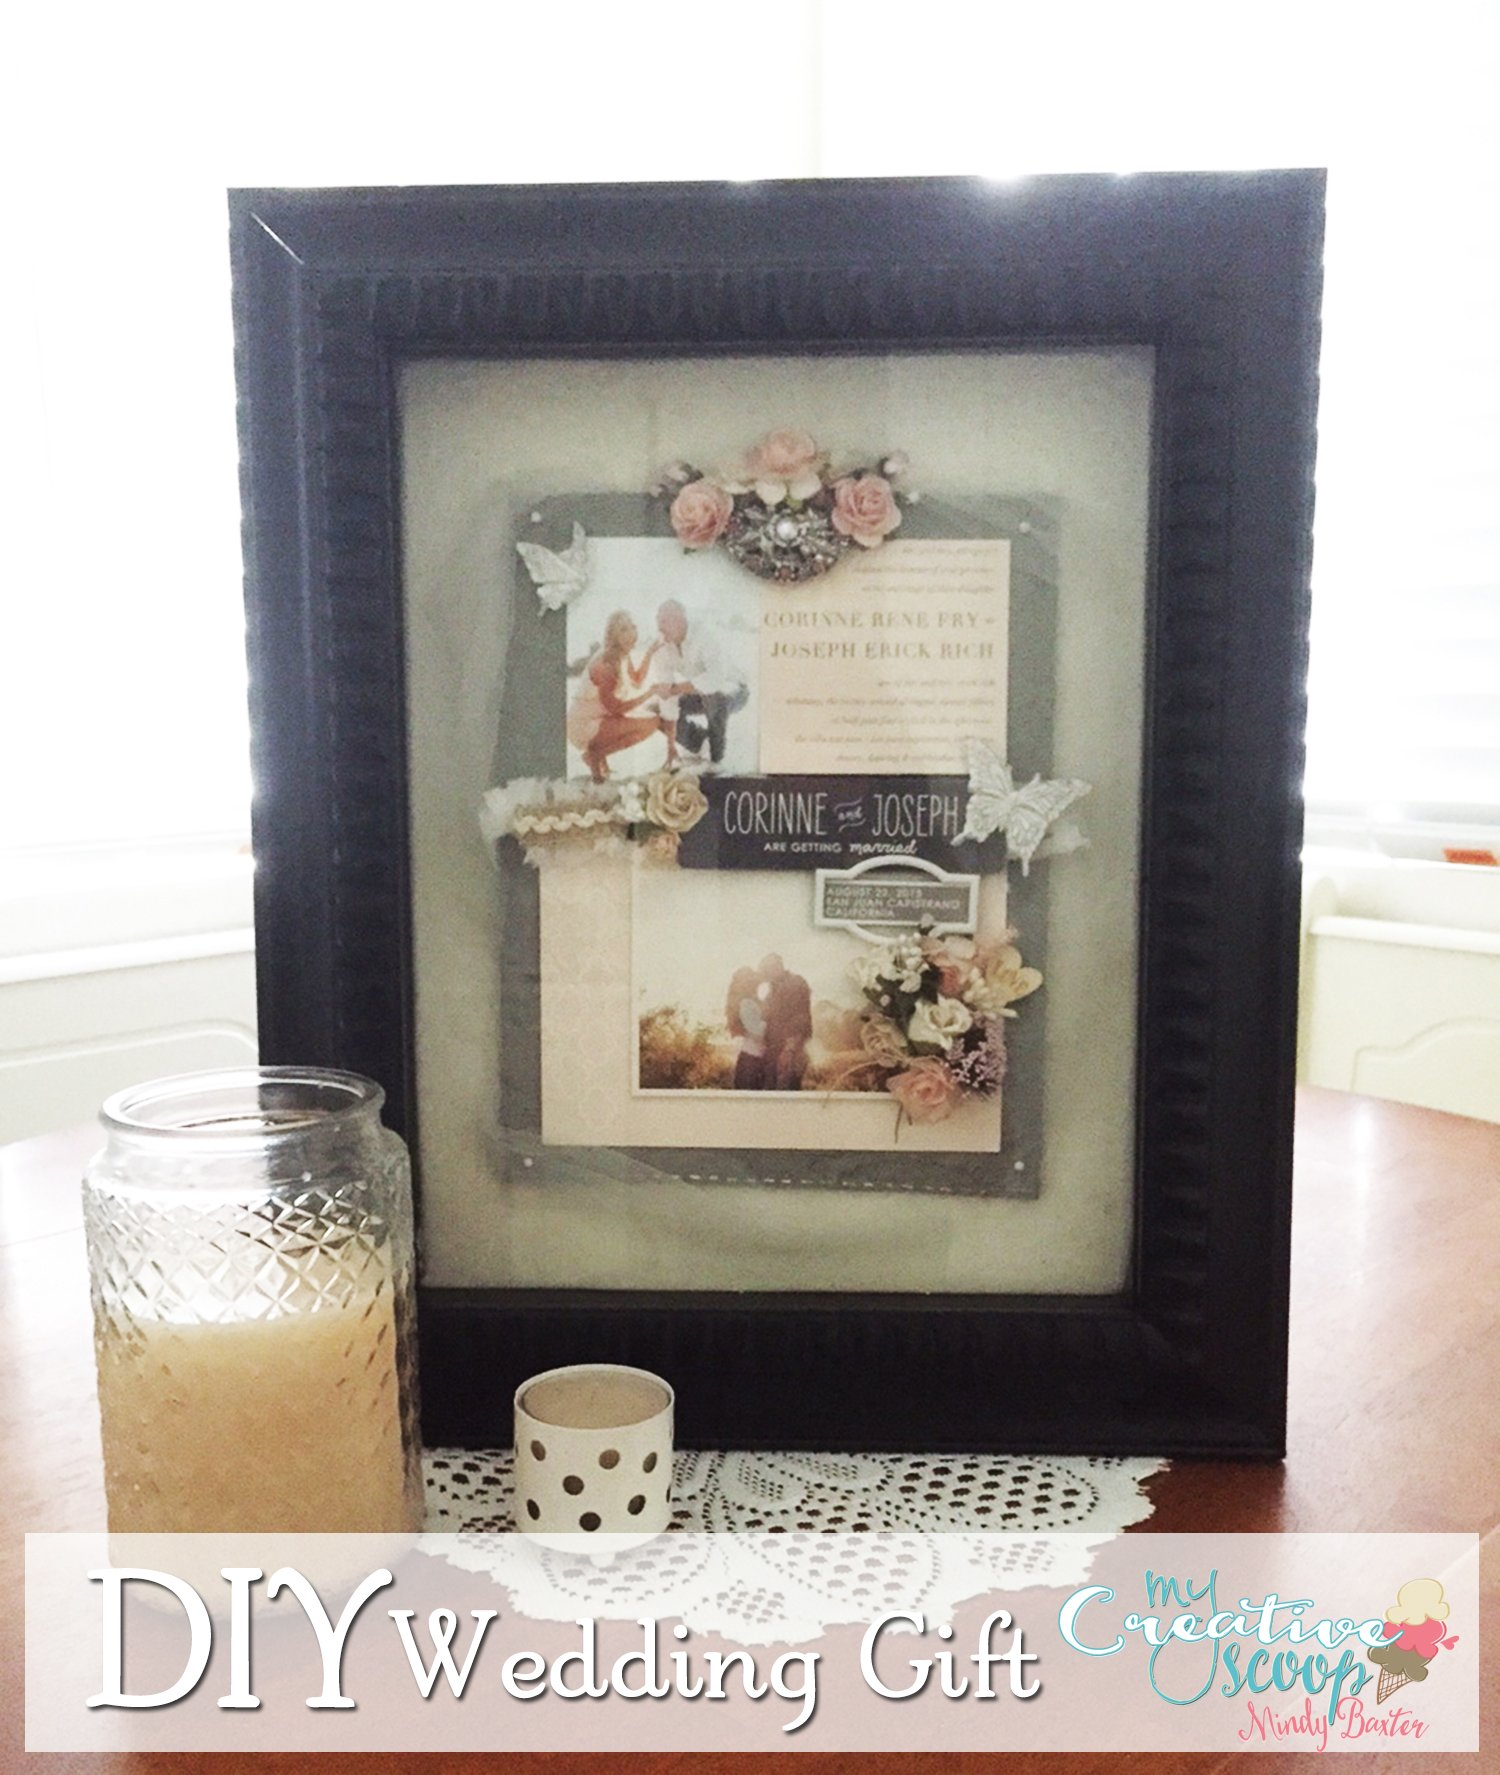 Great Wedding Gift Ideas: Easy DIY Wedding Gift